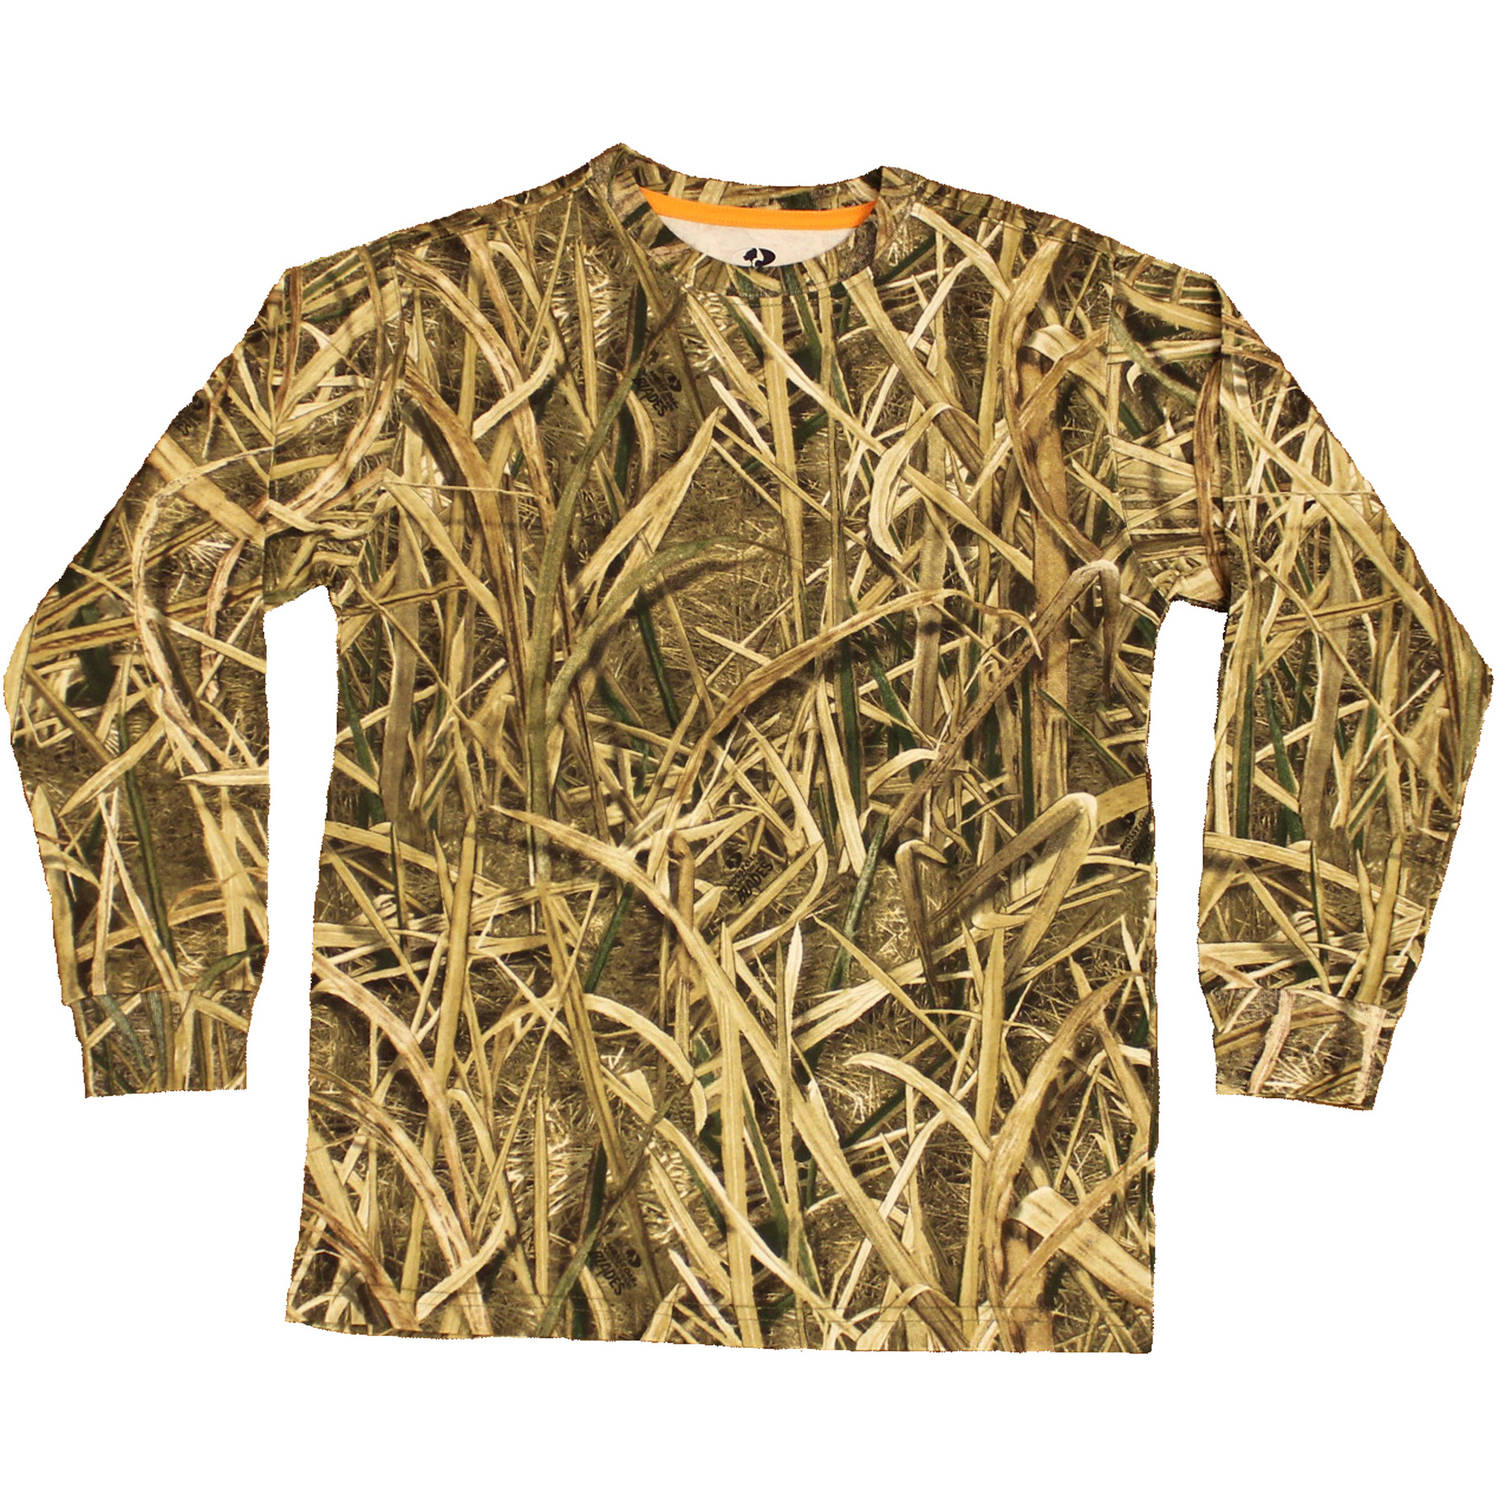 Boy's Long Sleeve Camo Tee, Available in Multiple Patterns